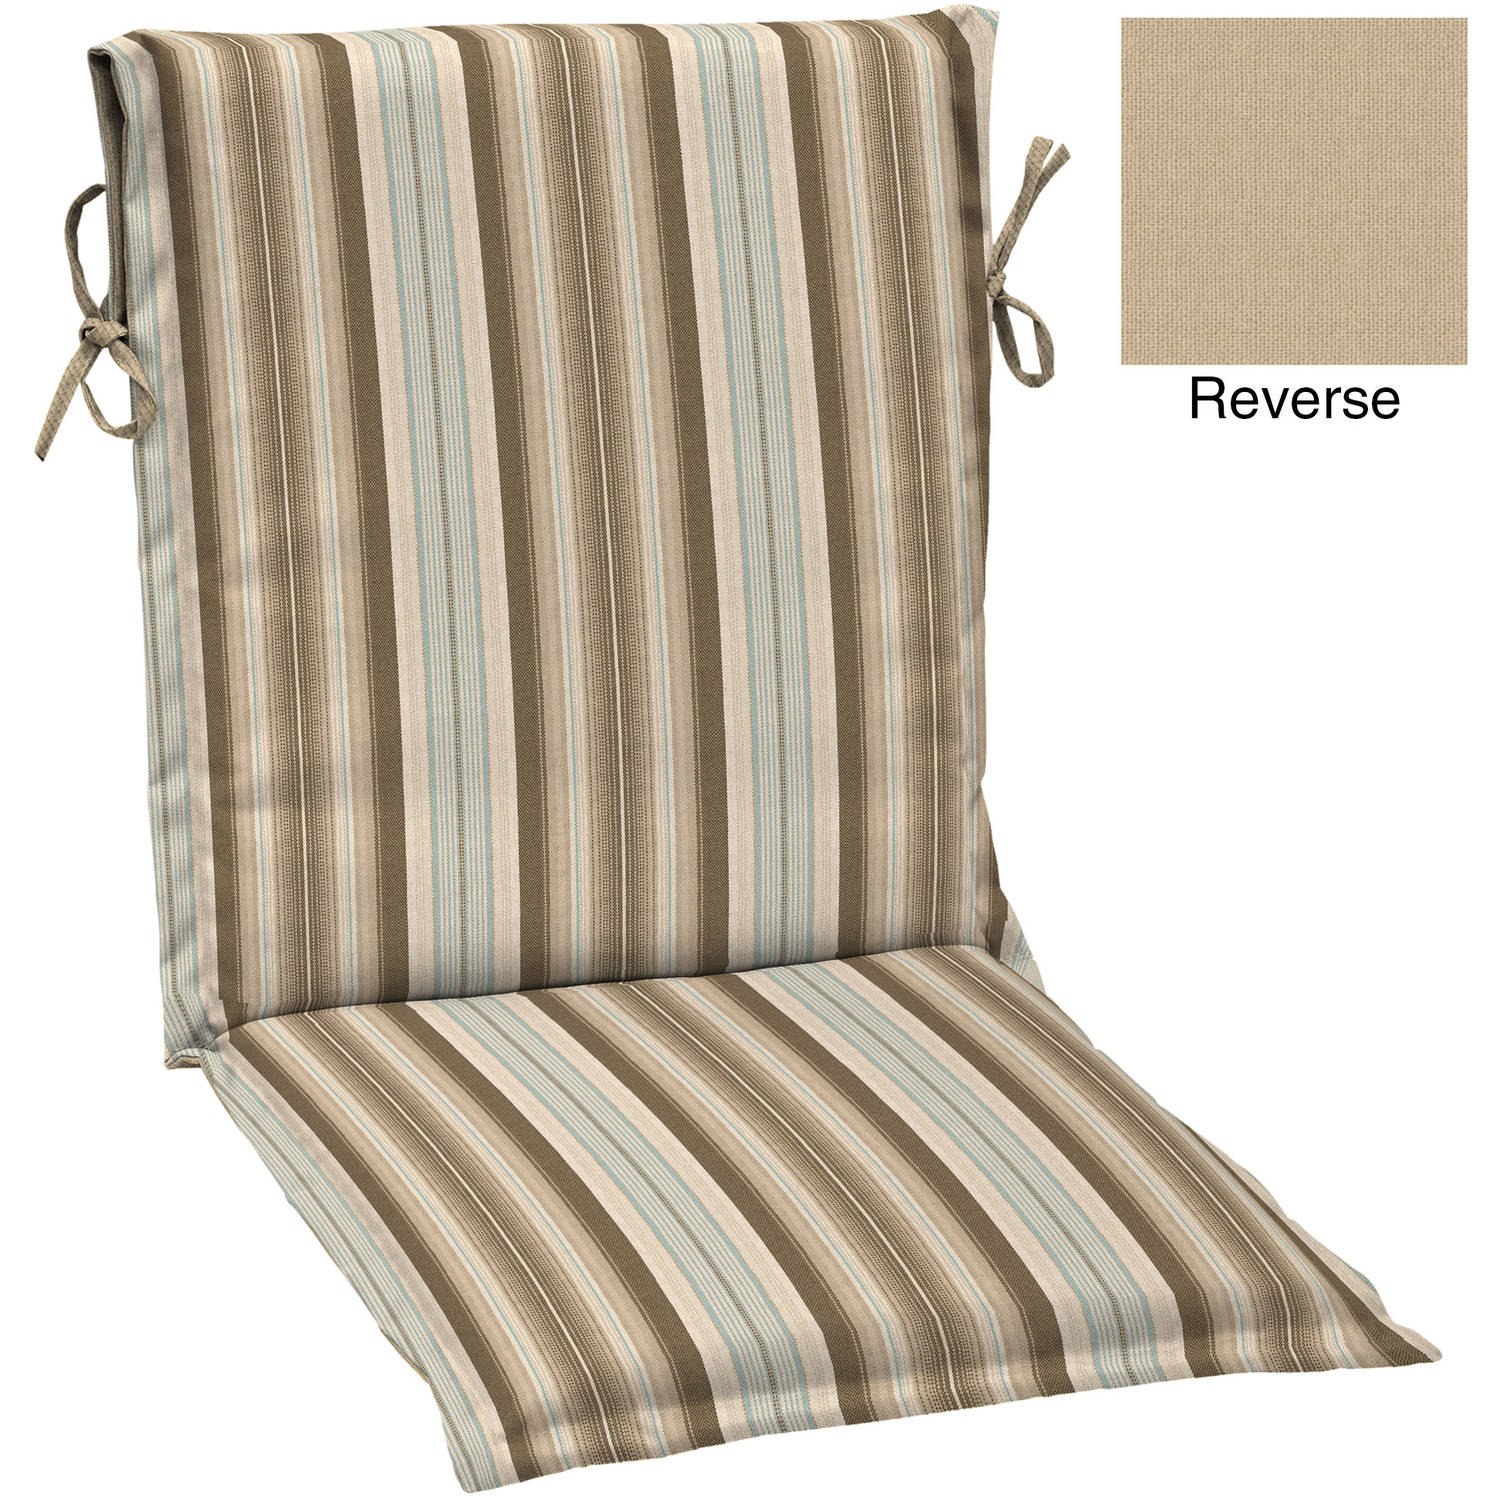 Replacement Cushions For Better Homes And Gardens Patio Furniture